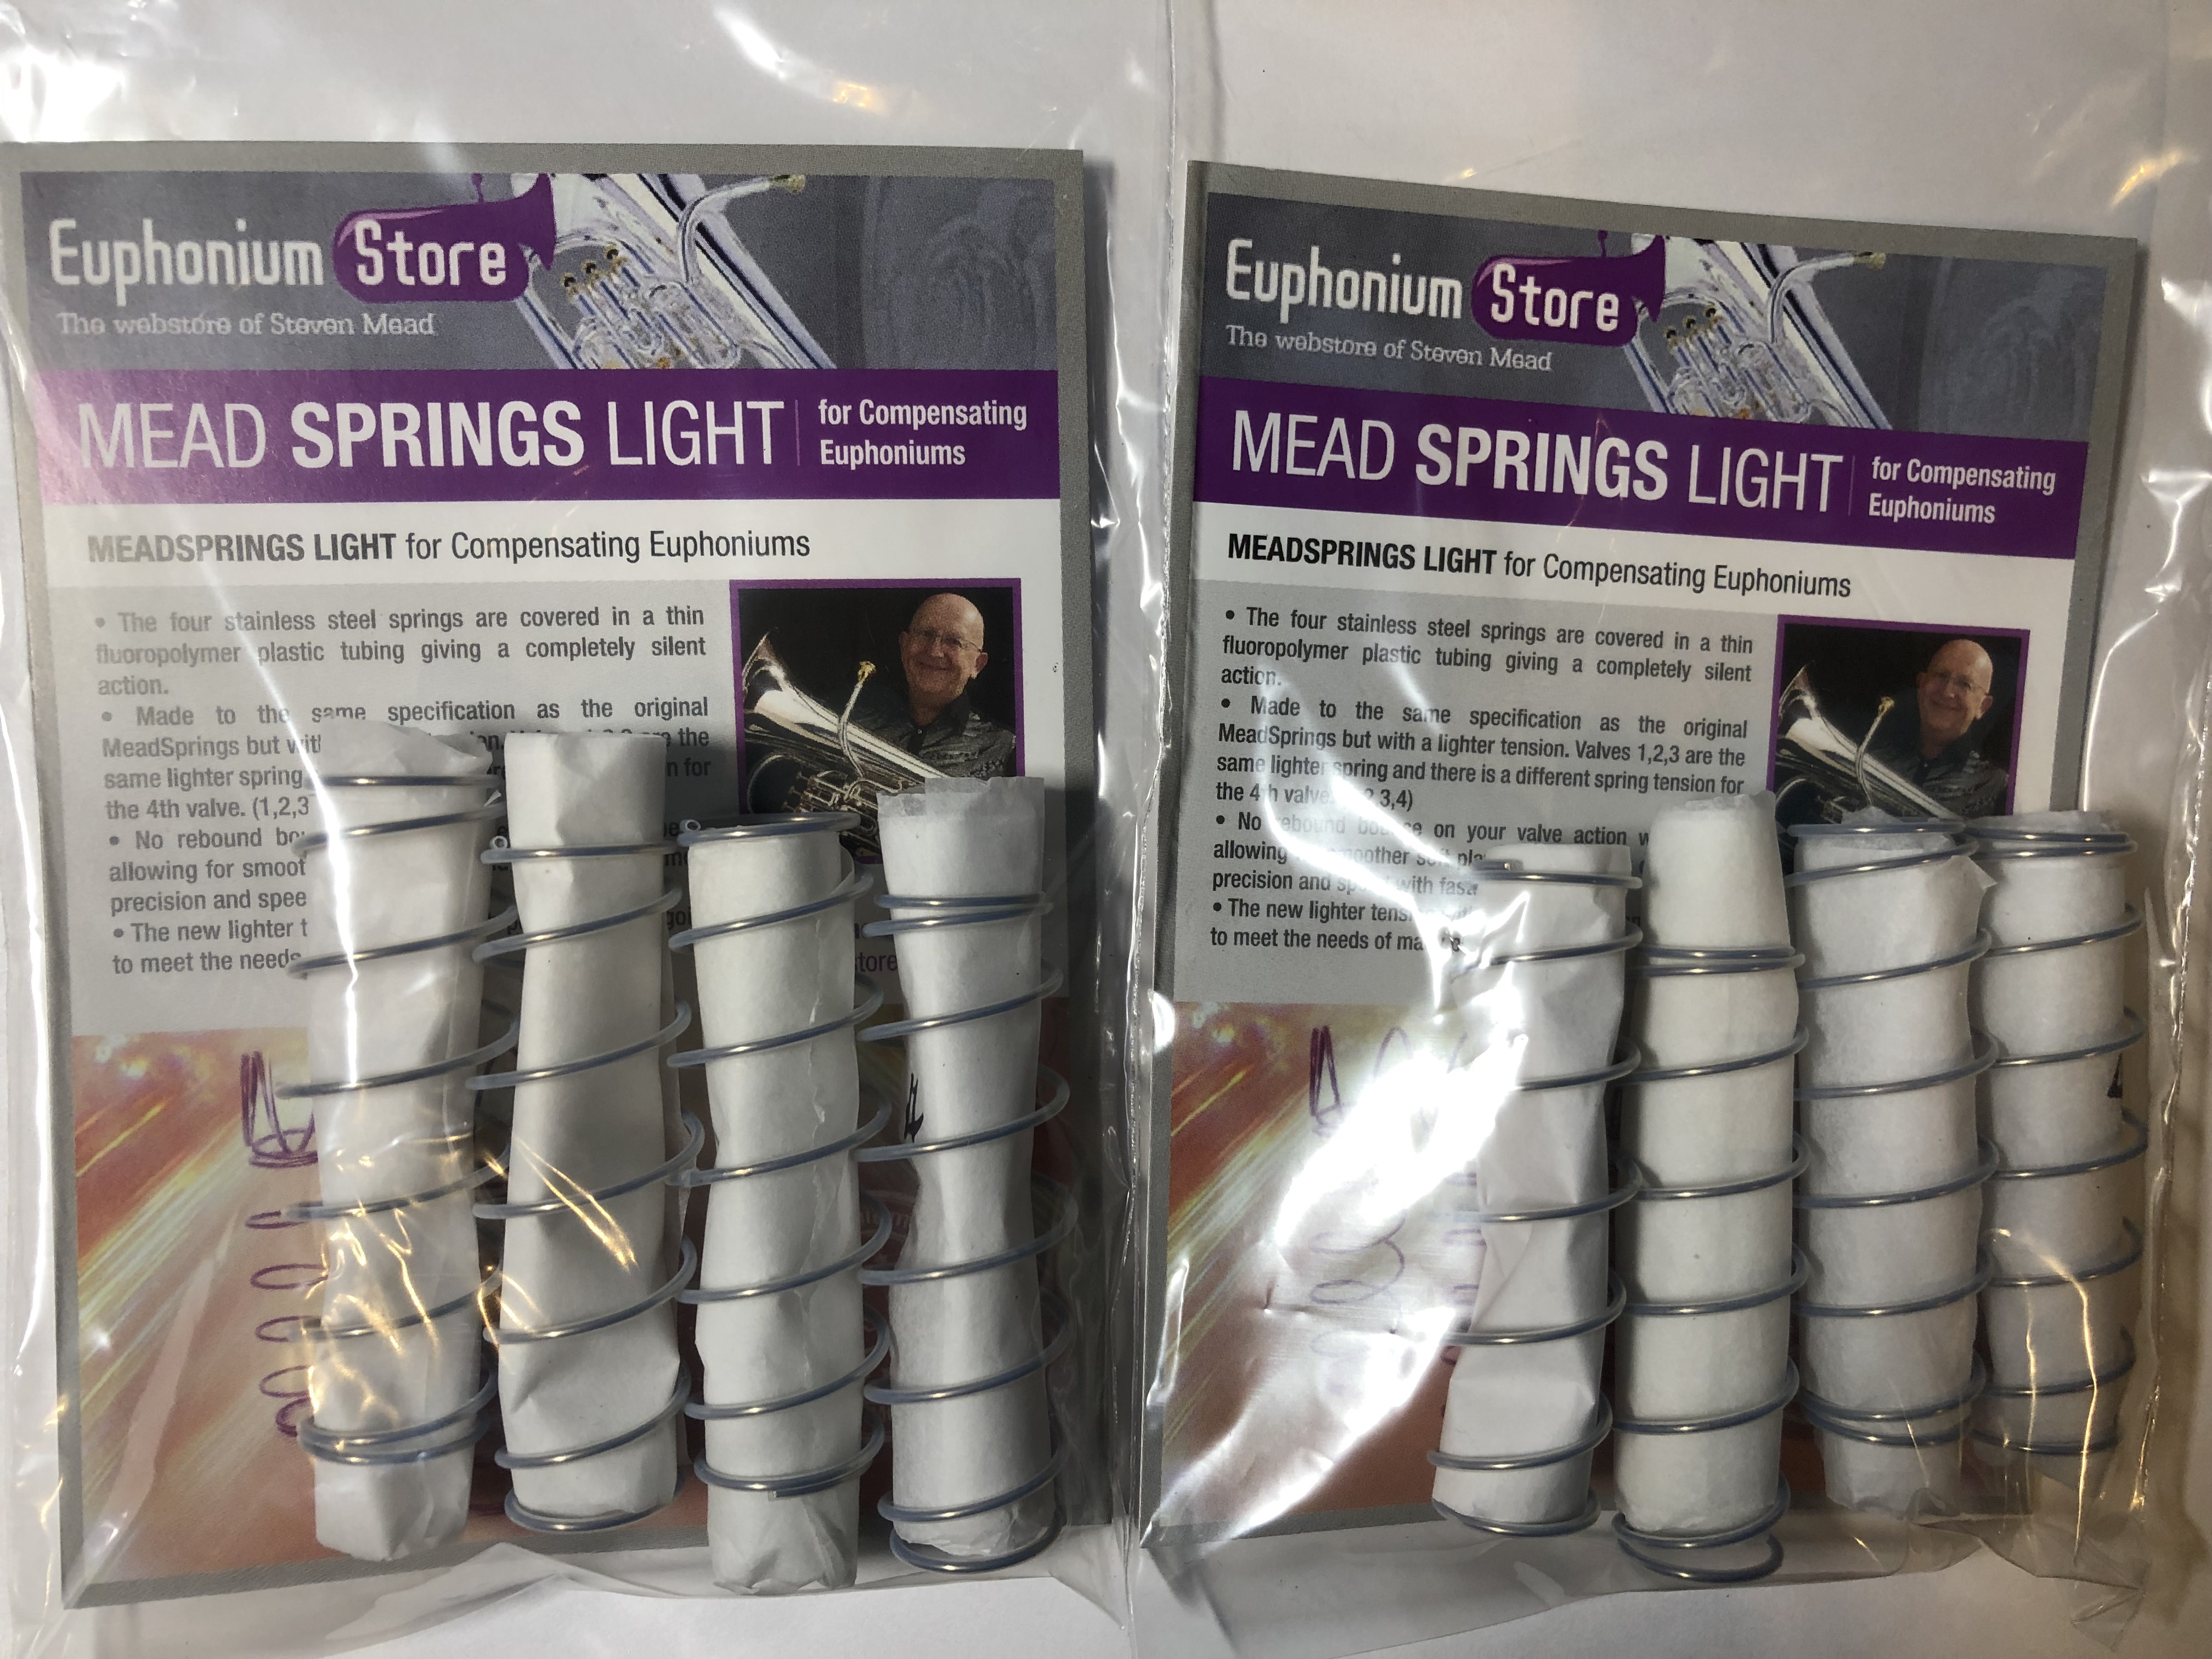 Two sets of Light MeadSprings for Euphonium